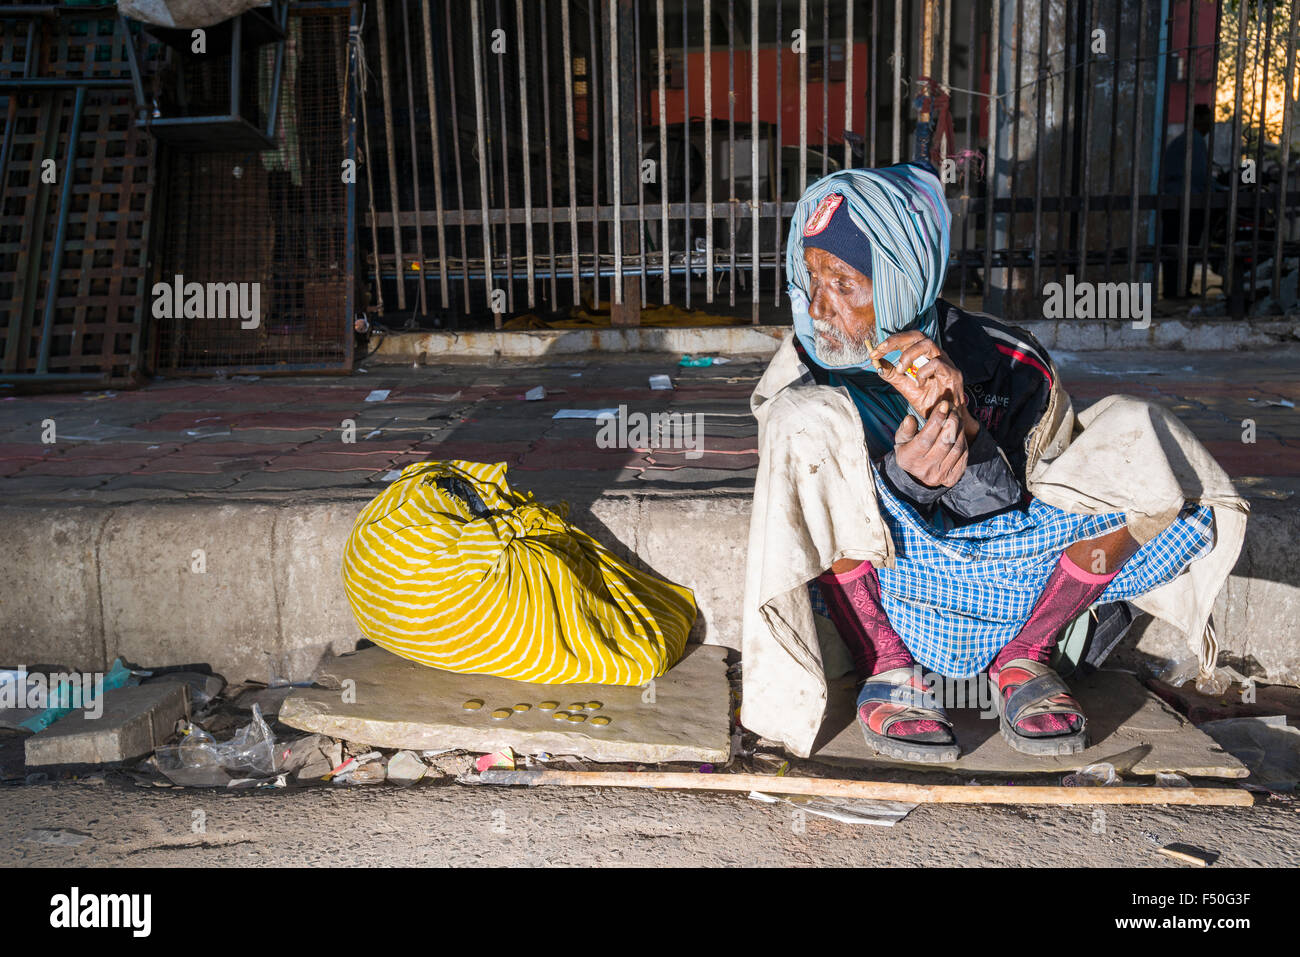 A homeless beggar is sitting on the pavement after spending the night sleeping on the concrete floor - Stock Image